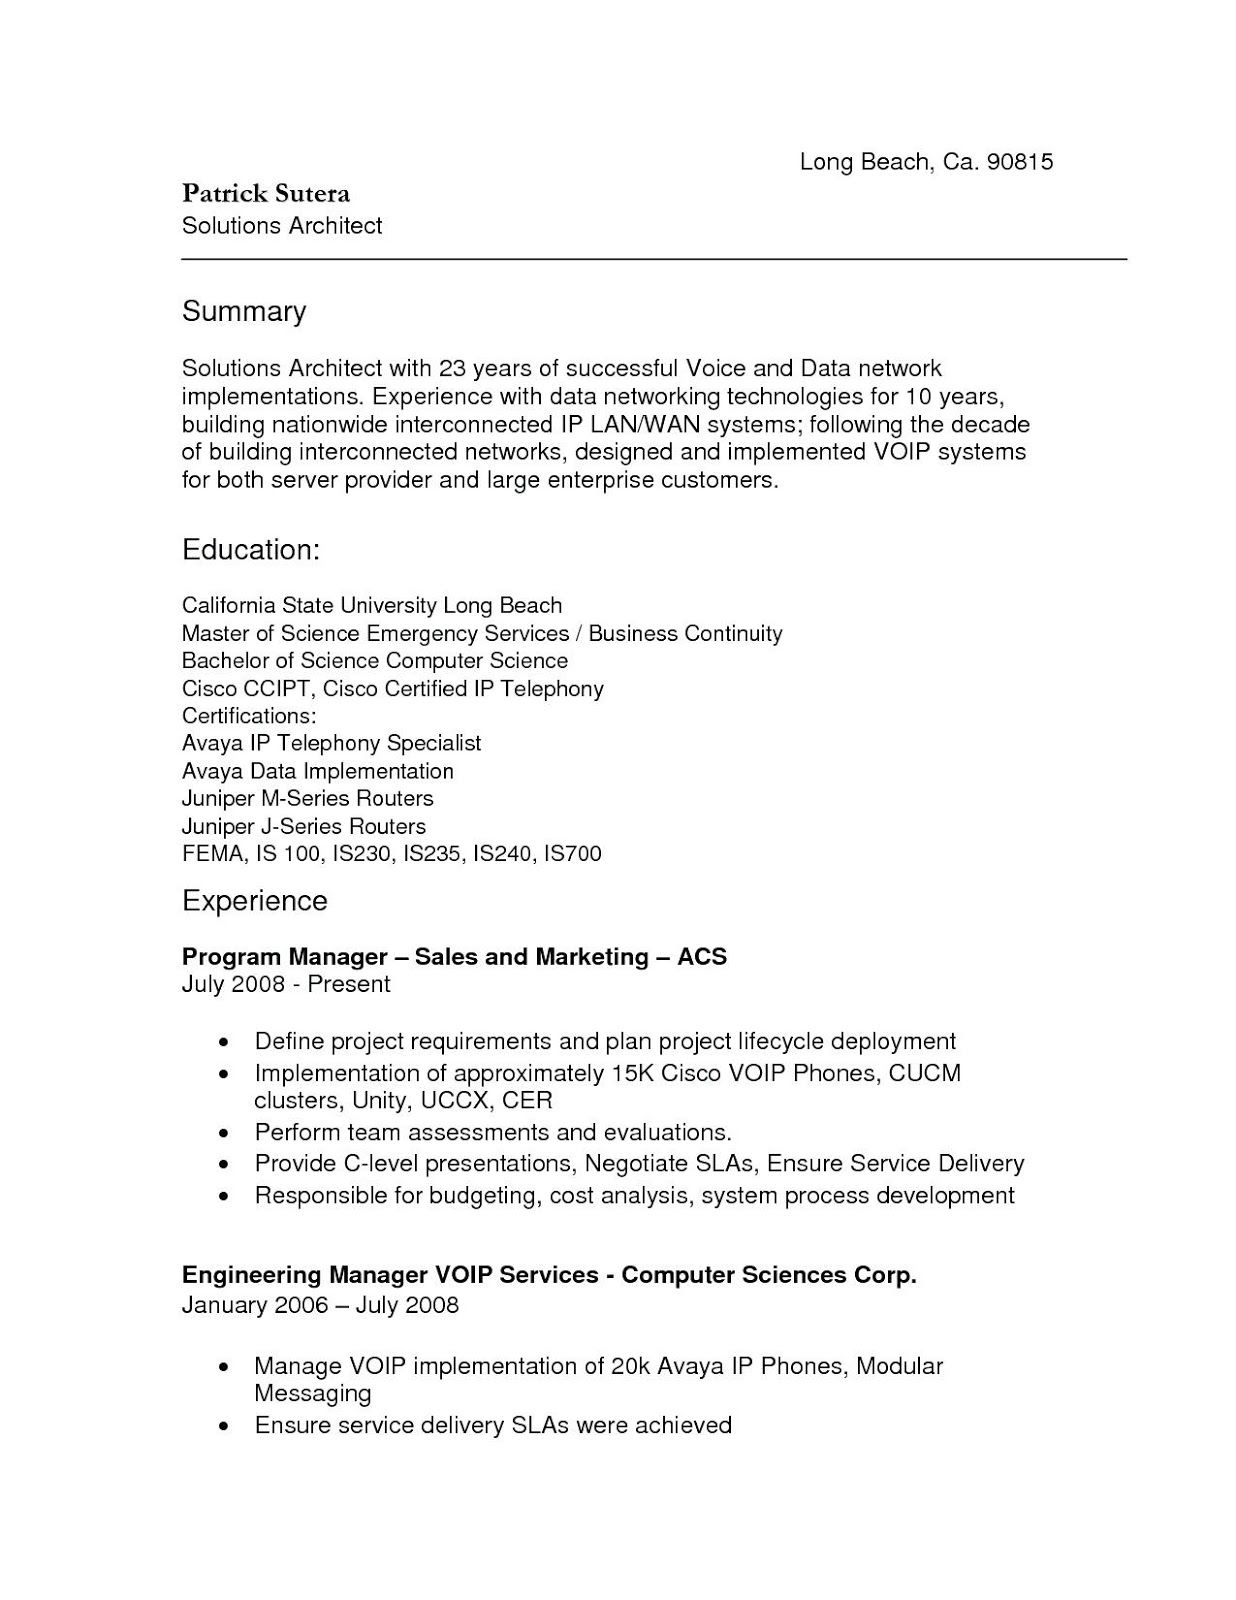 Network Architect Resume Pdf 2019 Network Architect Resume